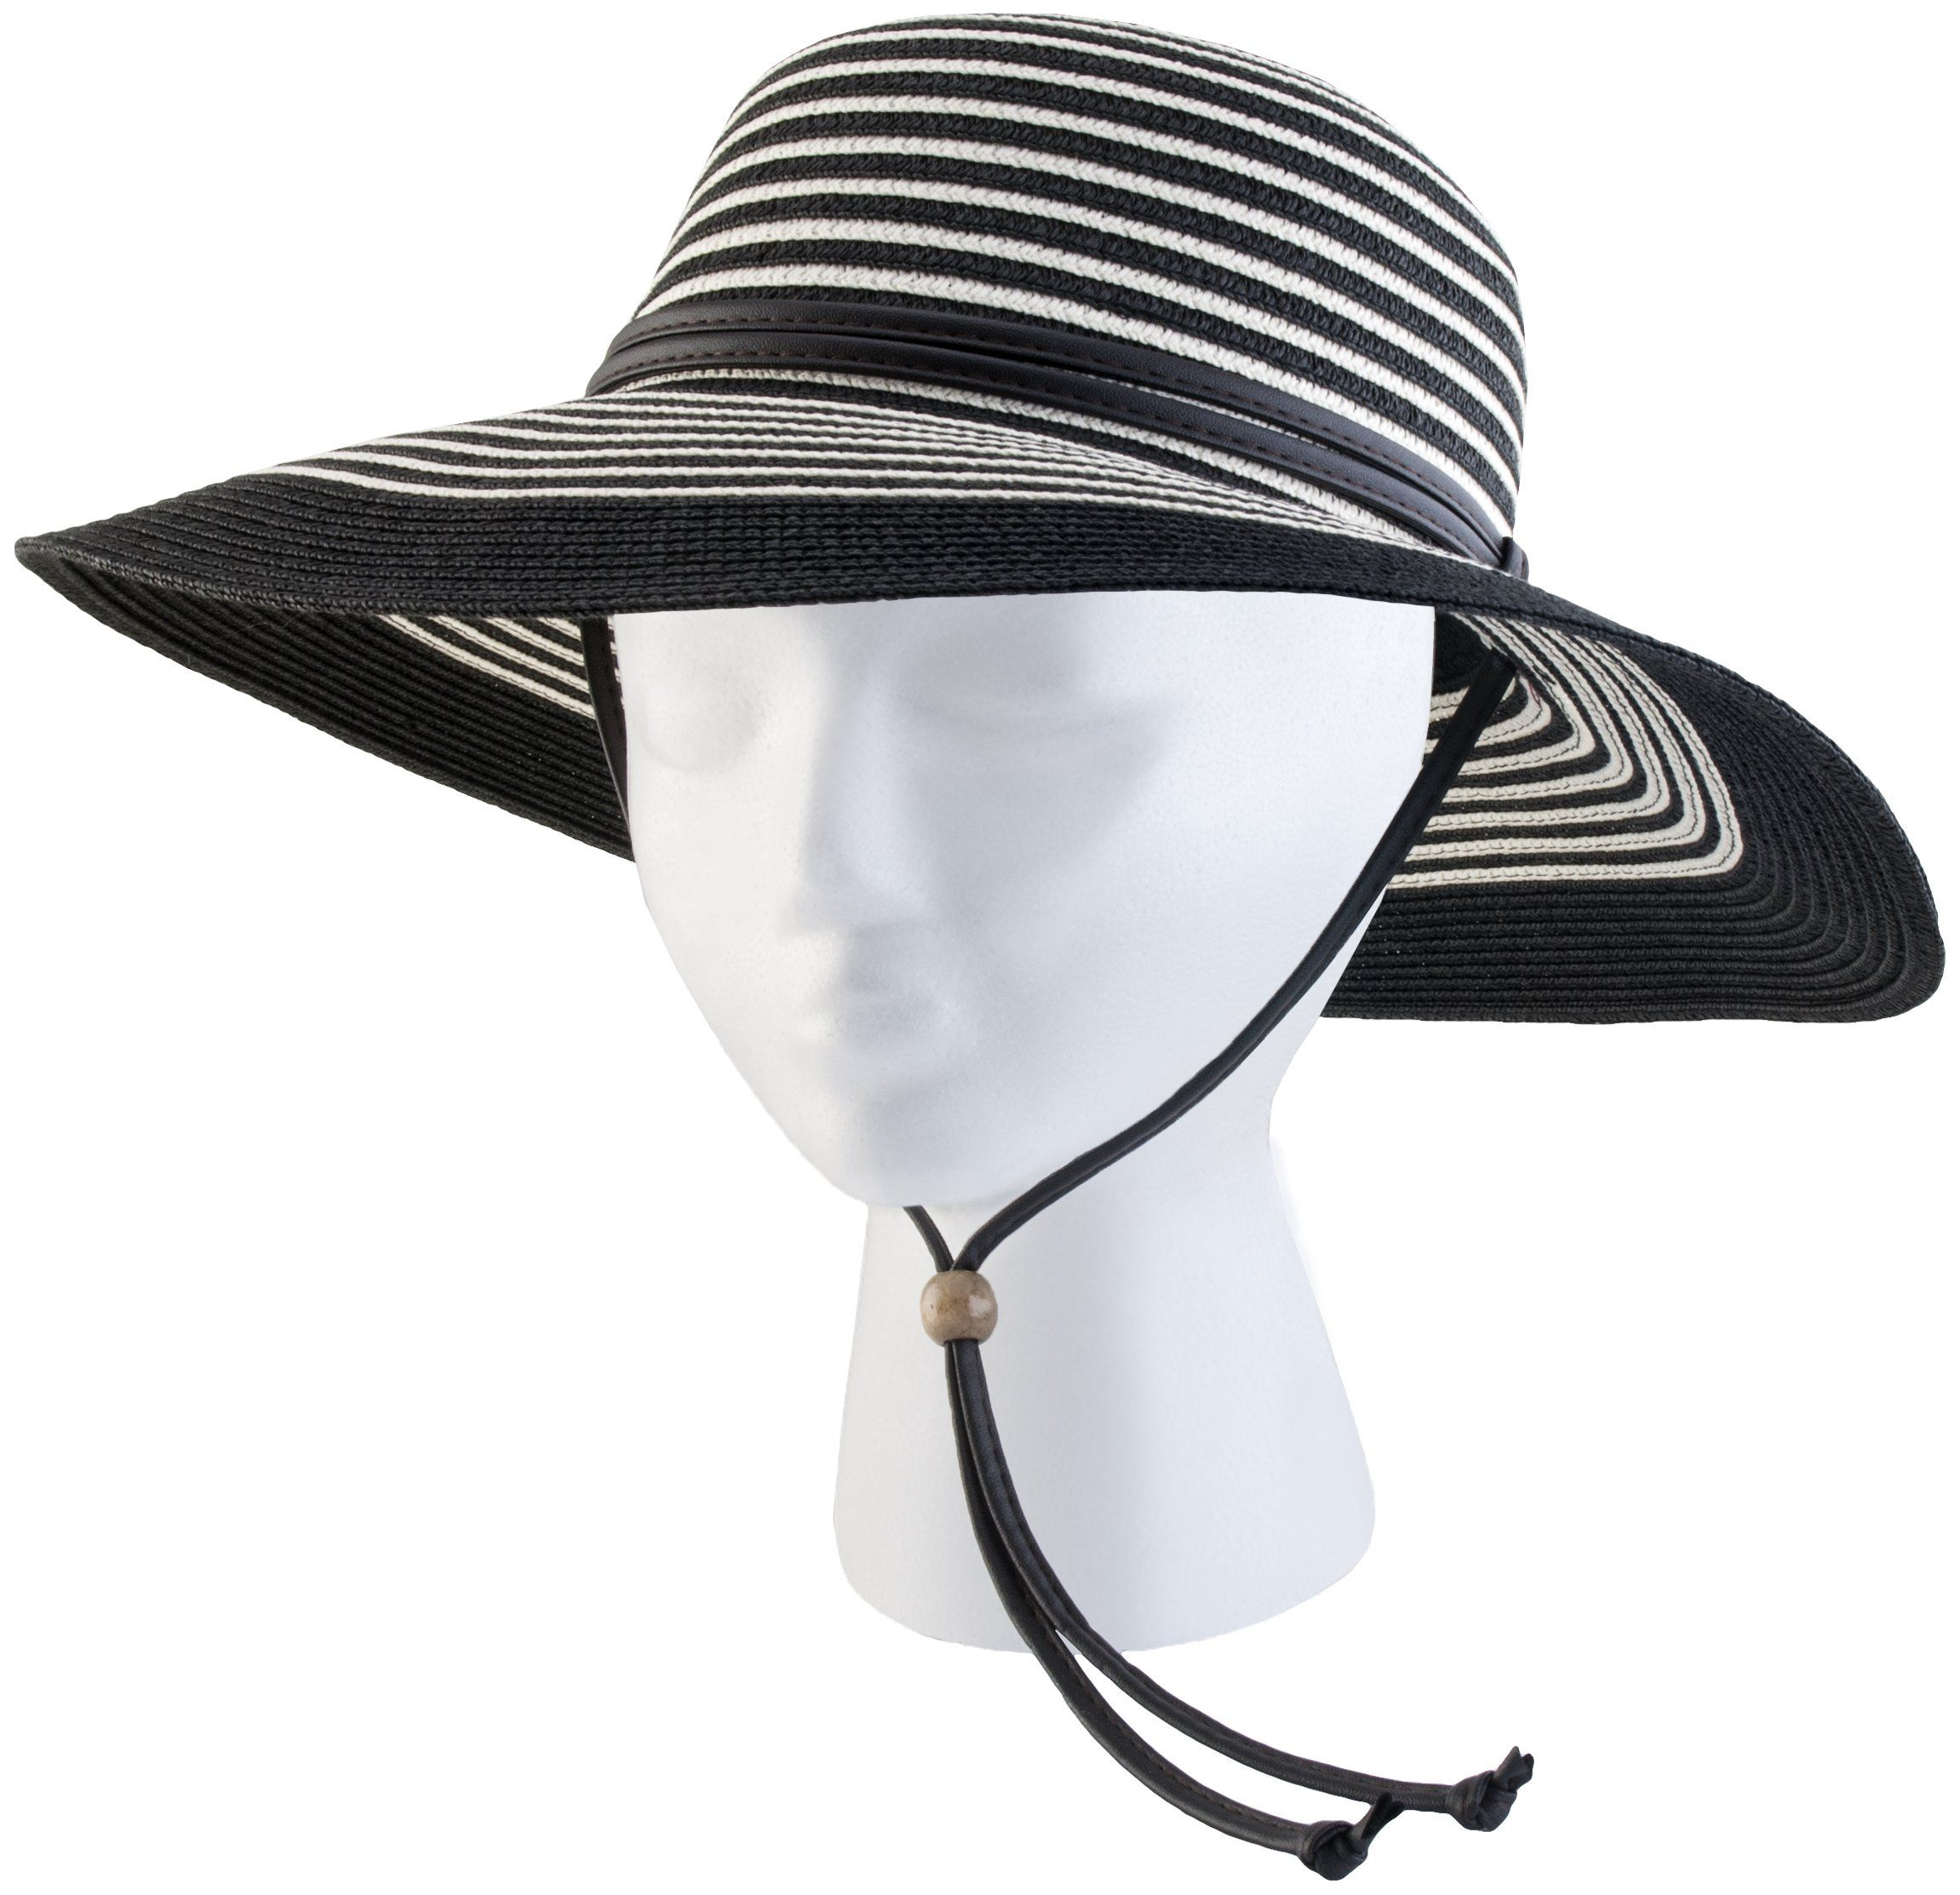 a1a633240bca5 Amazon.com  Sloggers 442DB01 Women s Wide Brim Braided Sun Hat with Wind  Lanyard - Dark Brown - Rated UPF 50+ Maximum Sun Protection  Clothing